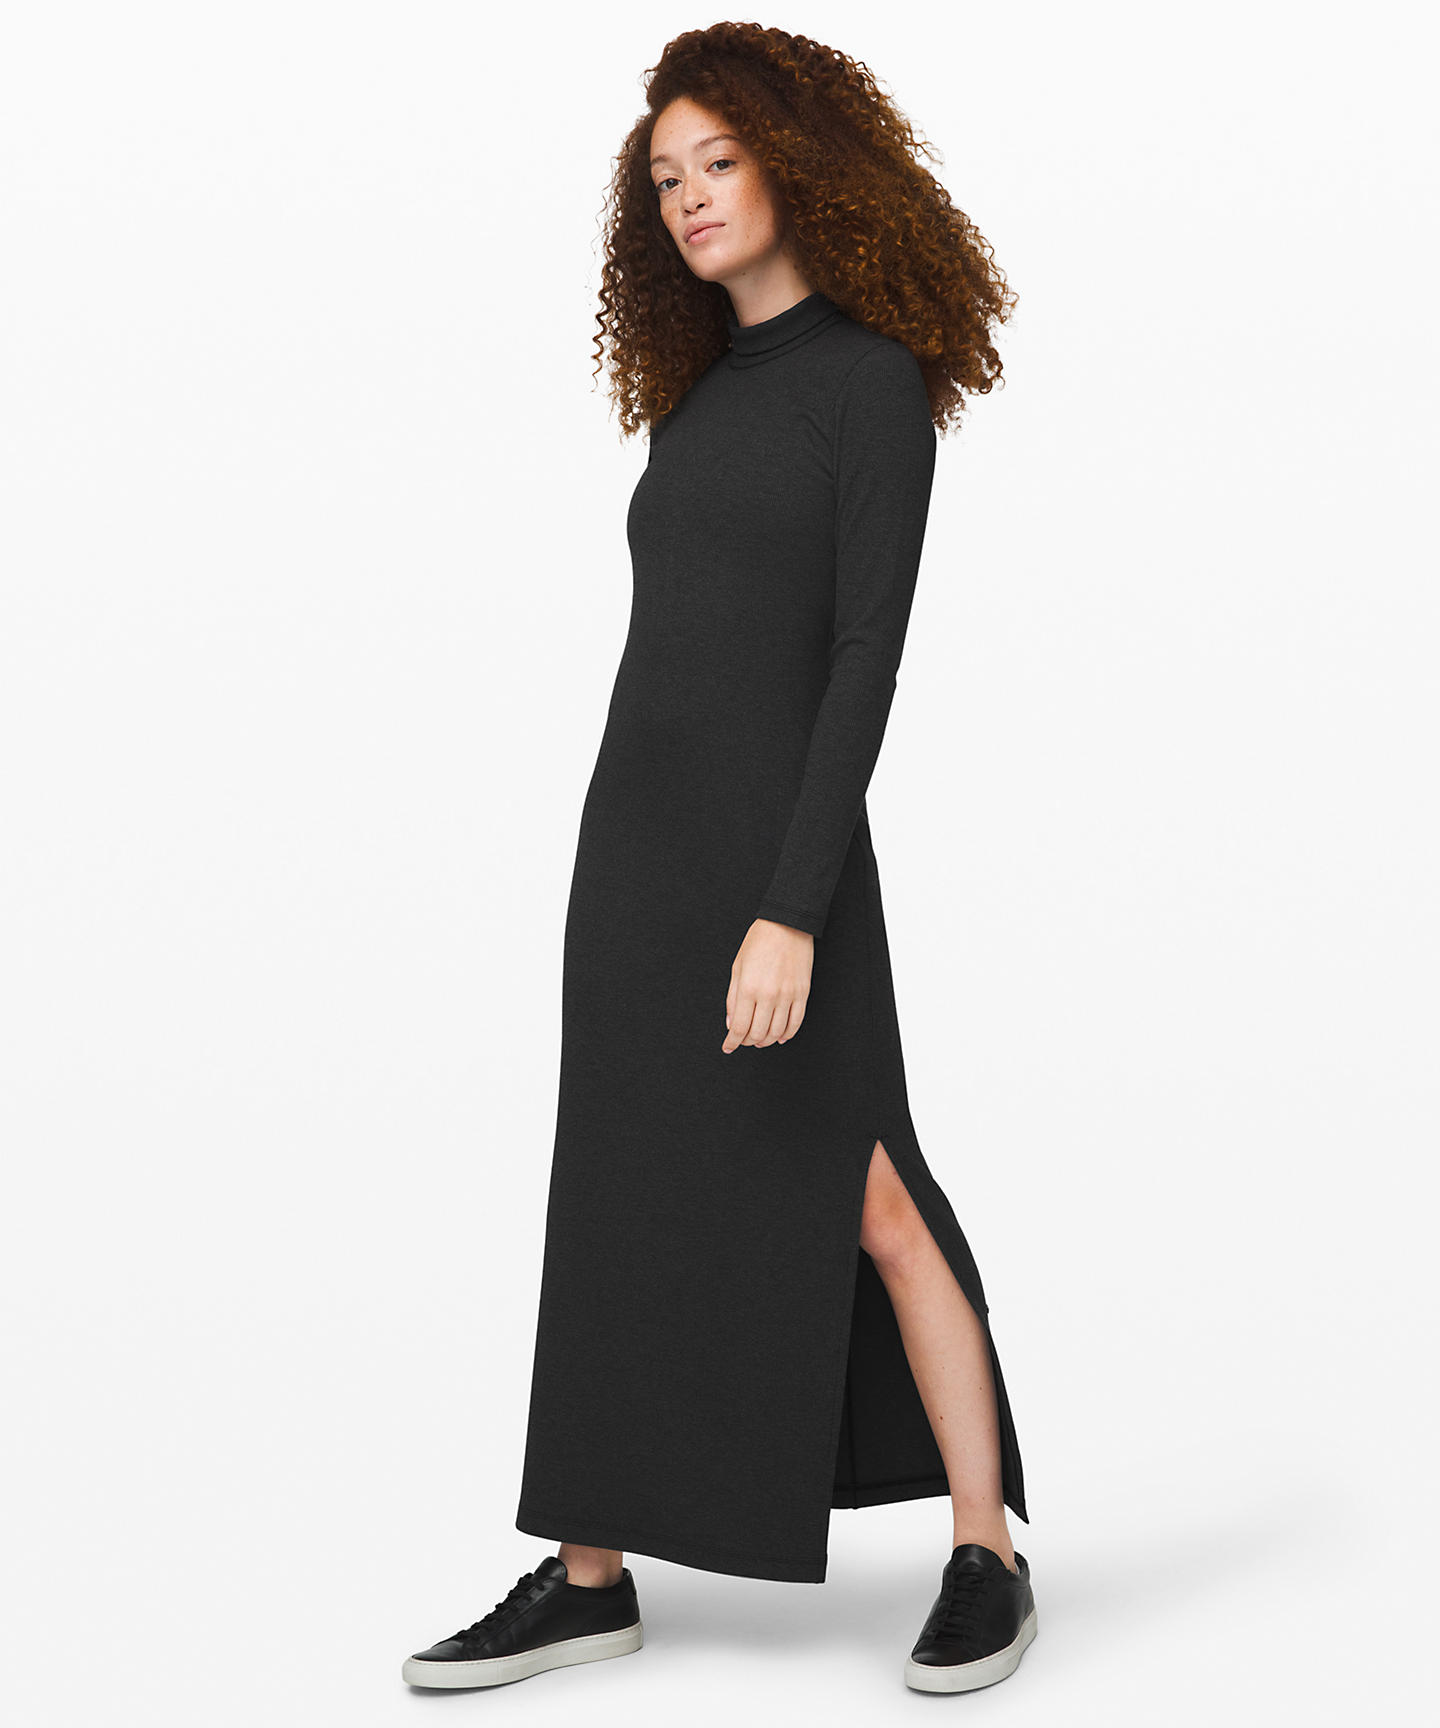 Kitsilano Turtleneck Rib Dress